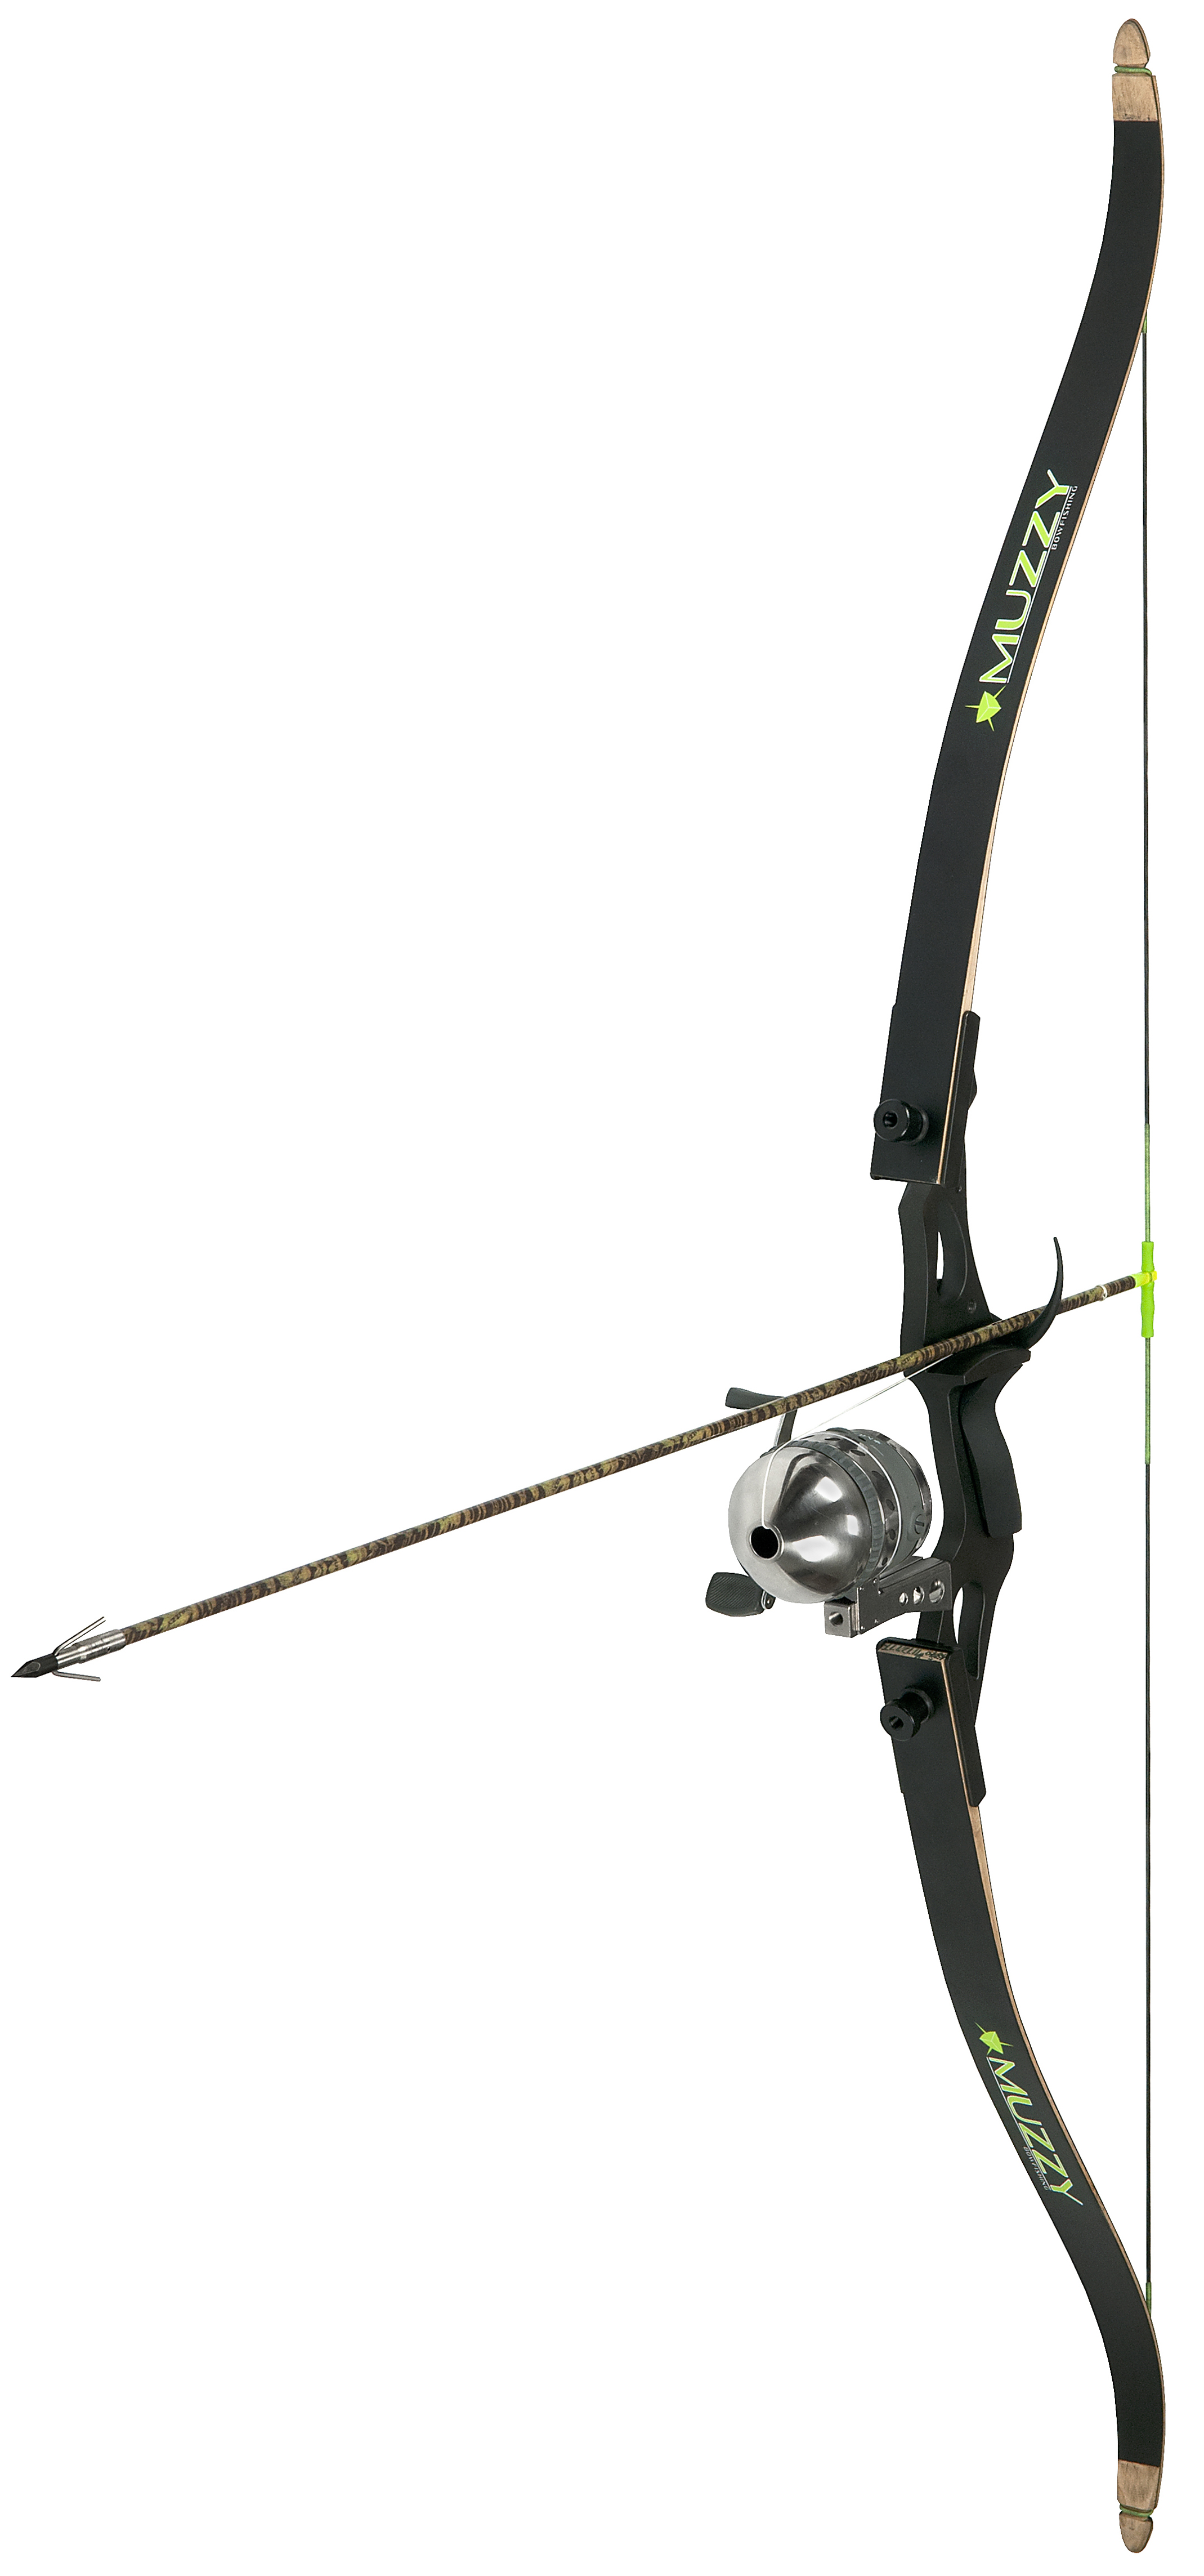 Getting started with bowfishing has gotten easier thanks for Bow fishing gear